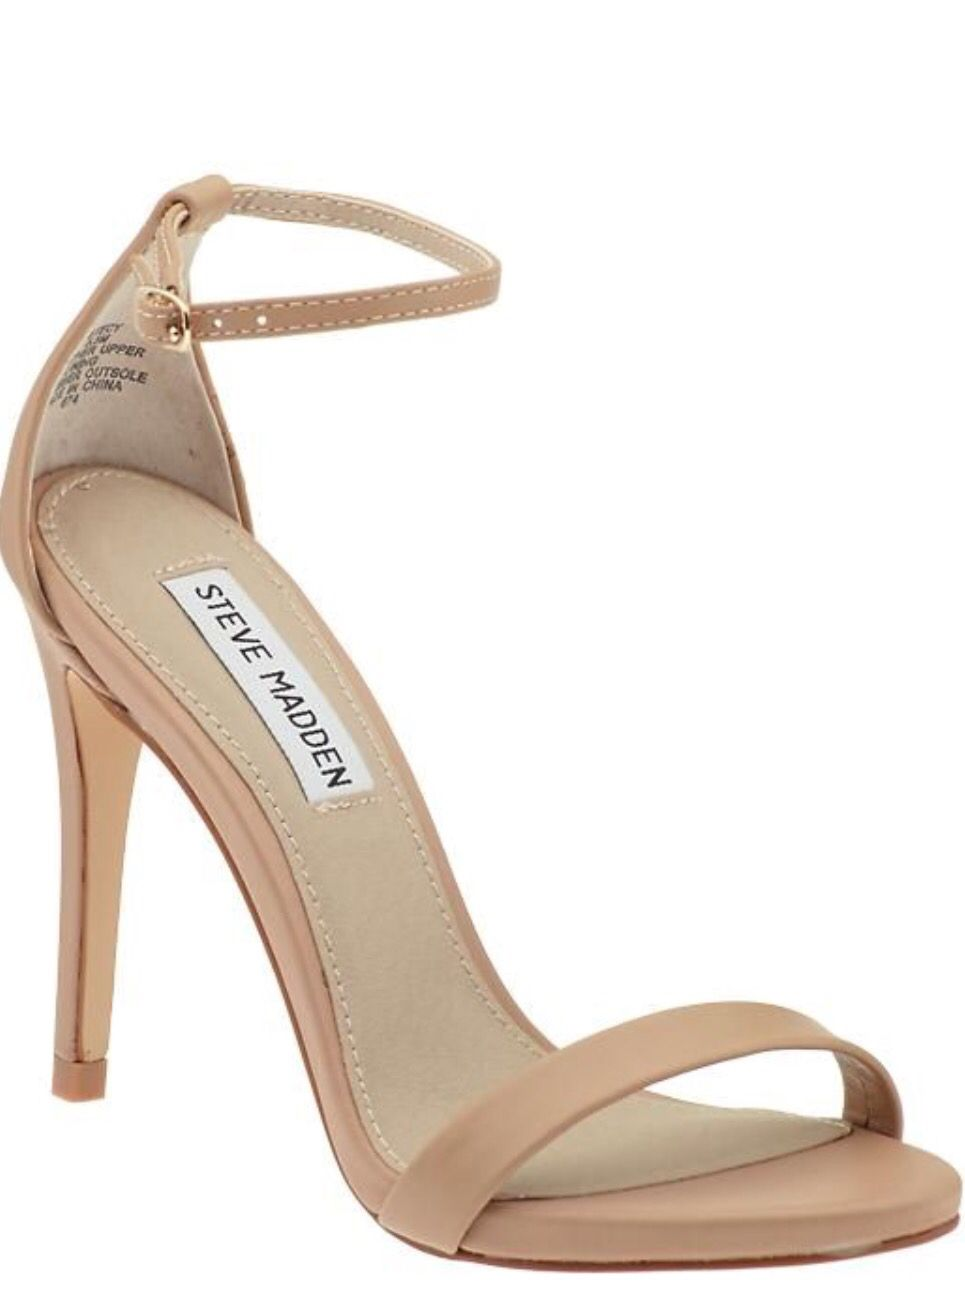 Minimal nude heel for springtime formal events Nude Strappy Heels